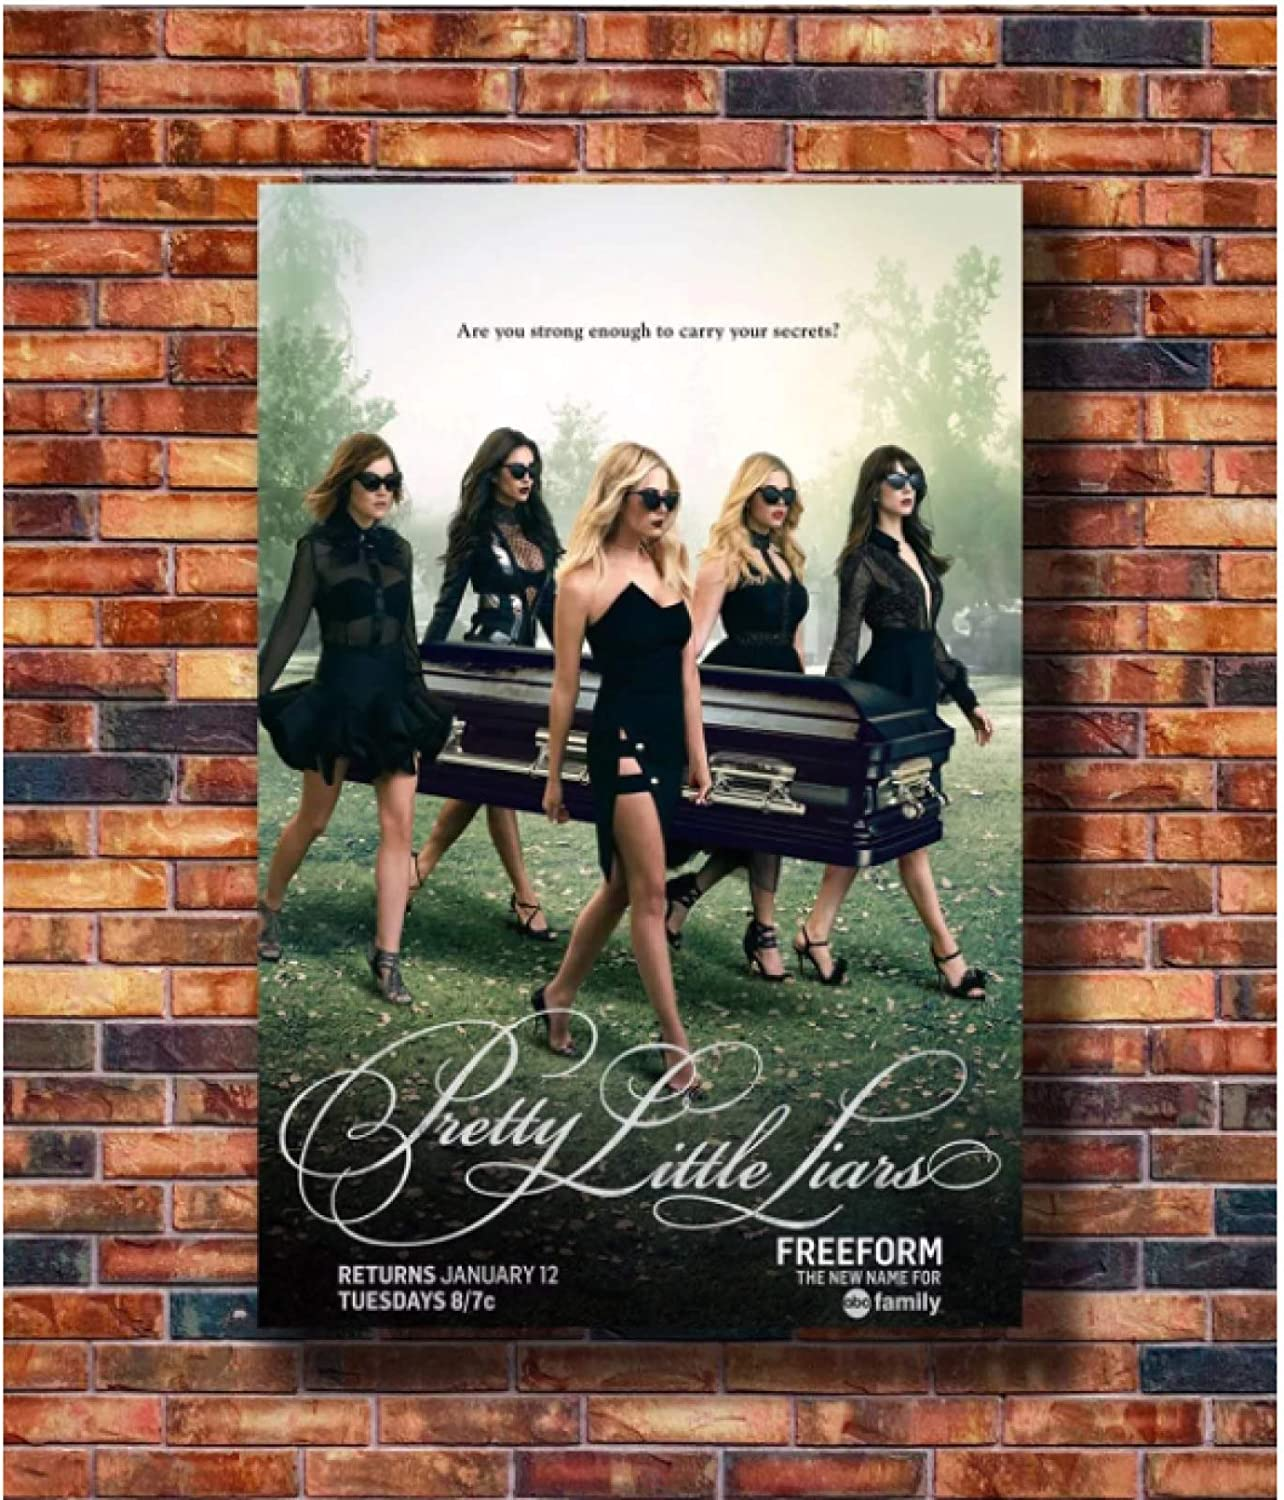 Swarouskll Hot Pretty Little Liars Canvas Wall Art Painting Poster Prints Picture for Living Room Home Decorations Decor Gift -20x28 Inch No Frame